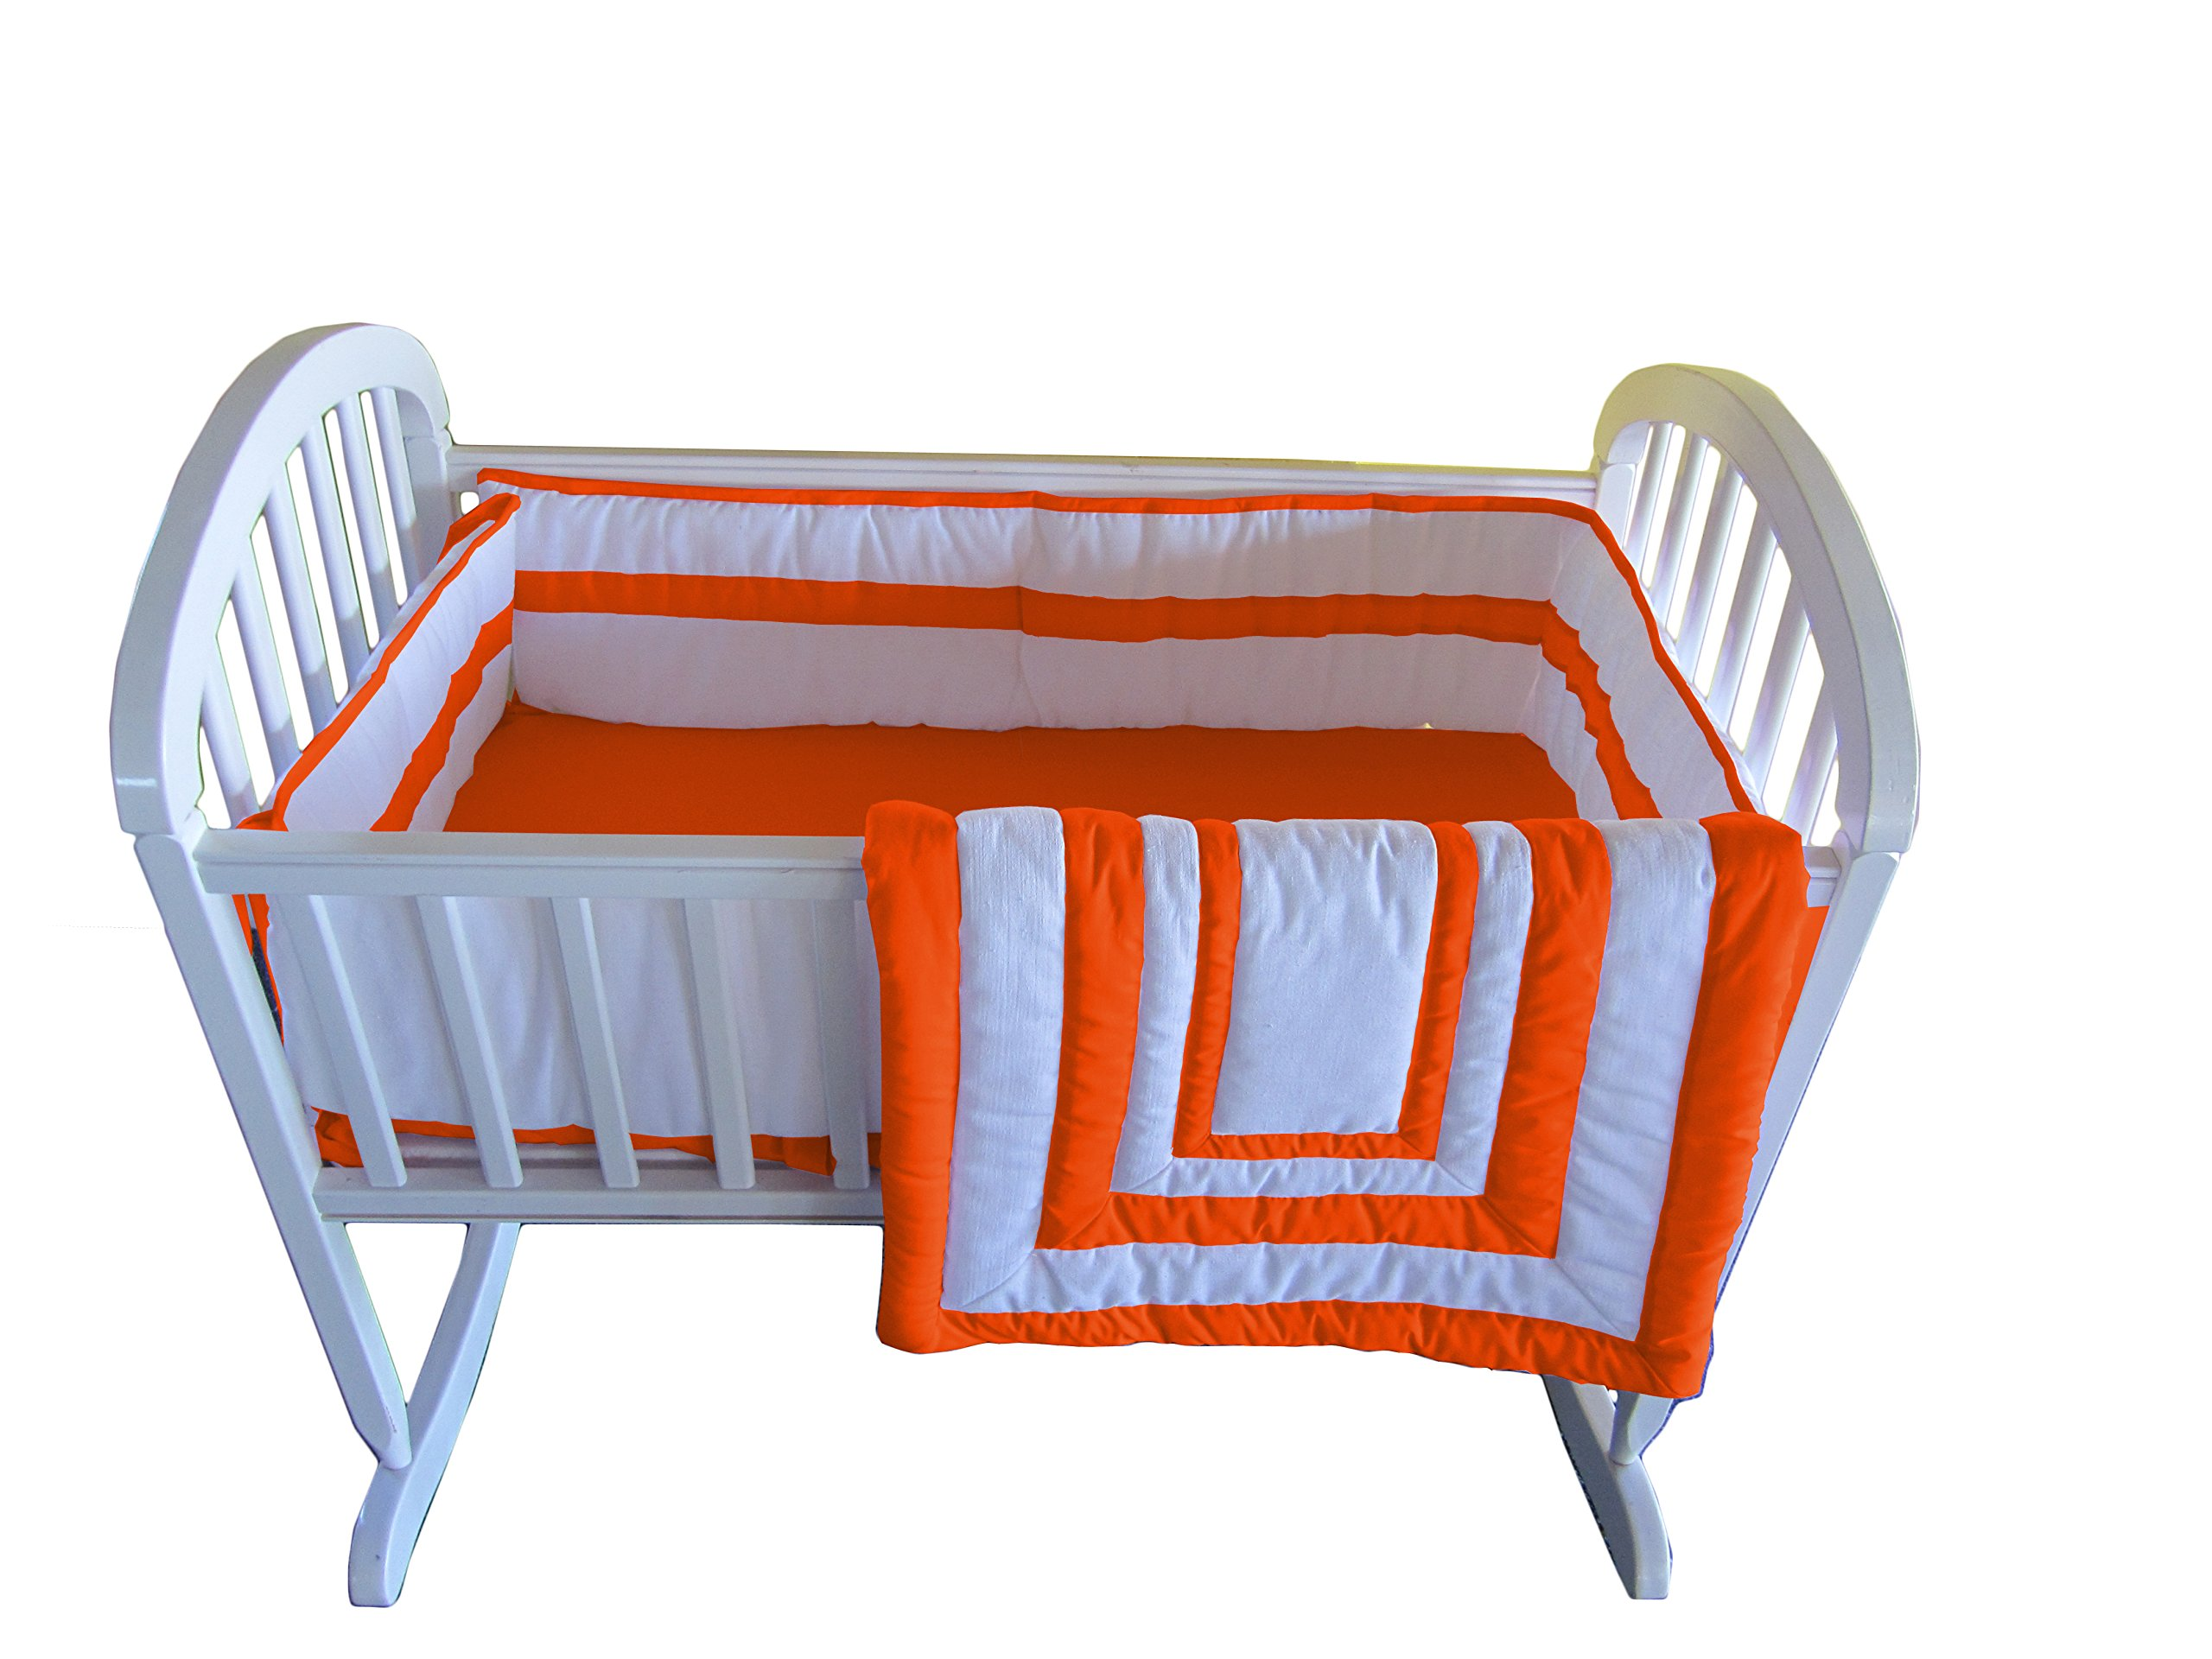 Baby Doll Bedding Modern Hotel Style Cradle Bedding Set, Orange by BabyDoll Bedding